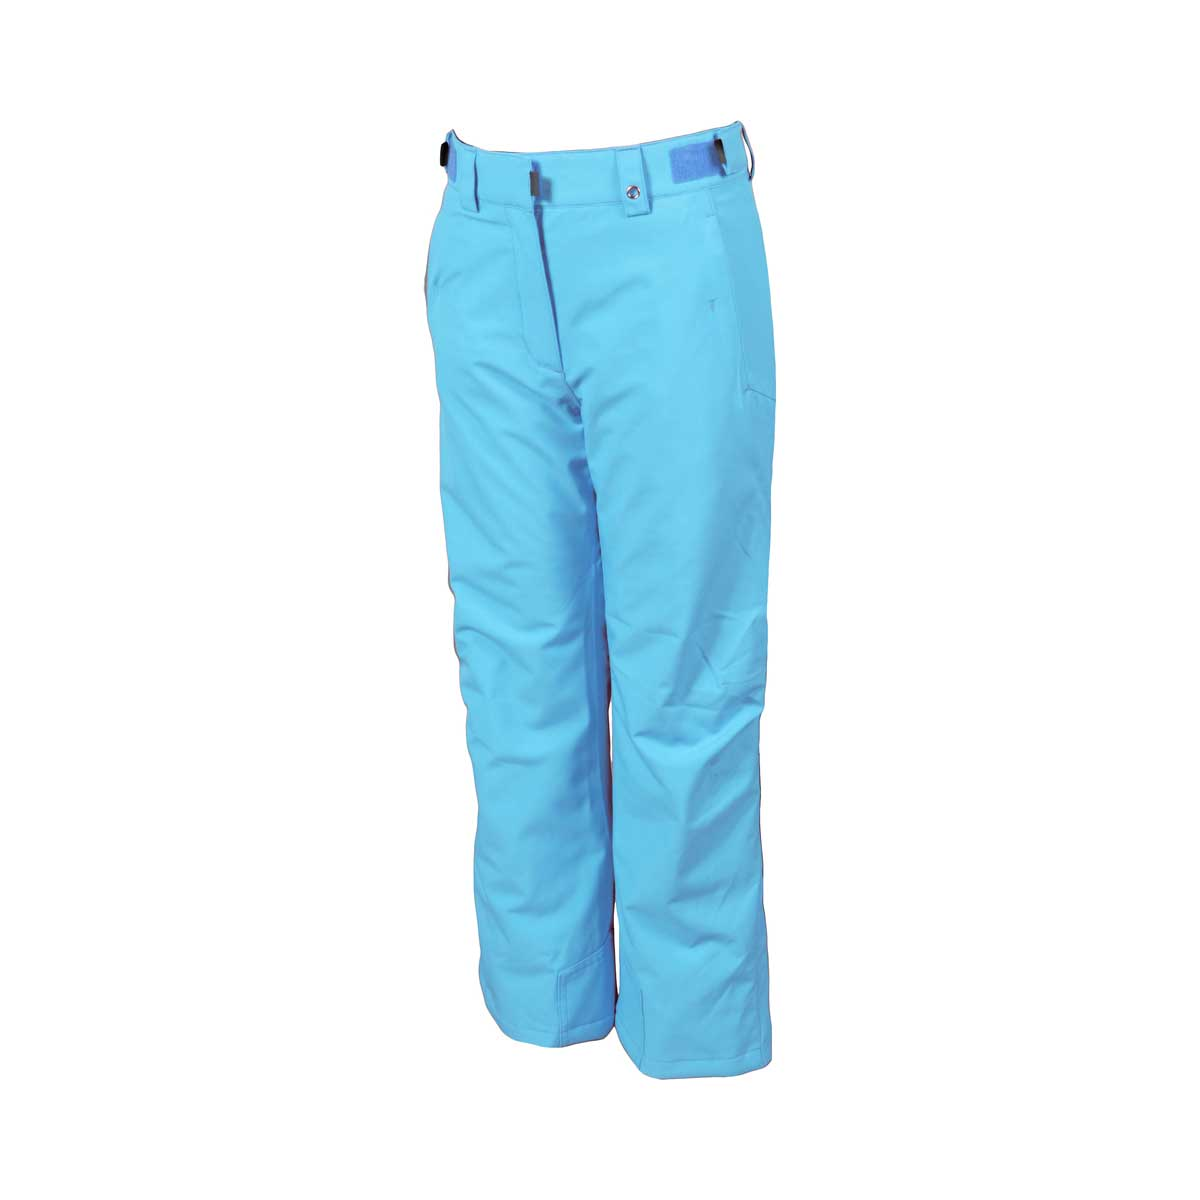 Karbon Girls' Halo Pant in Aqua